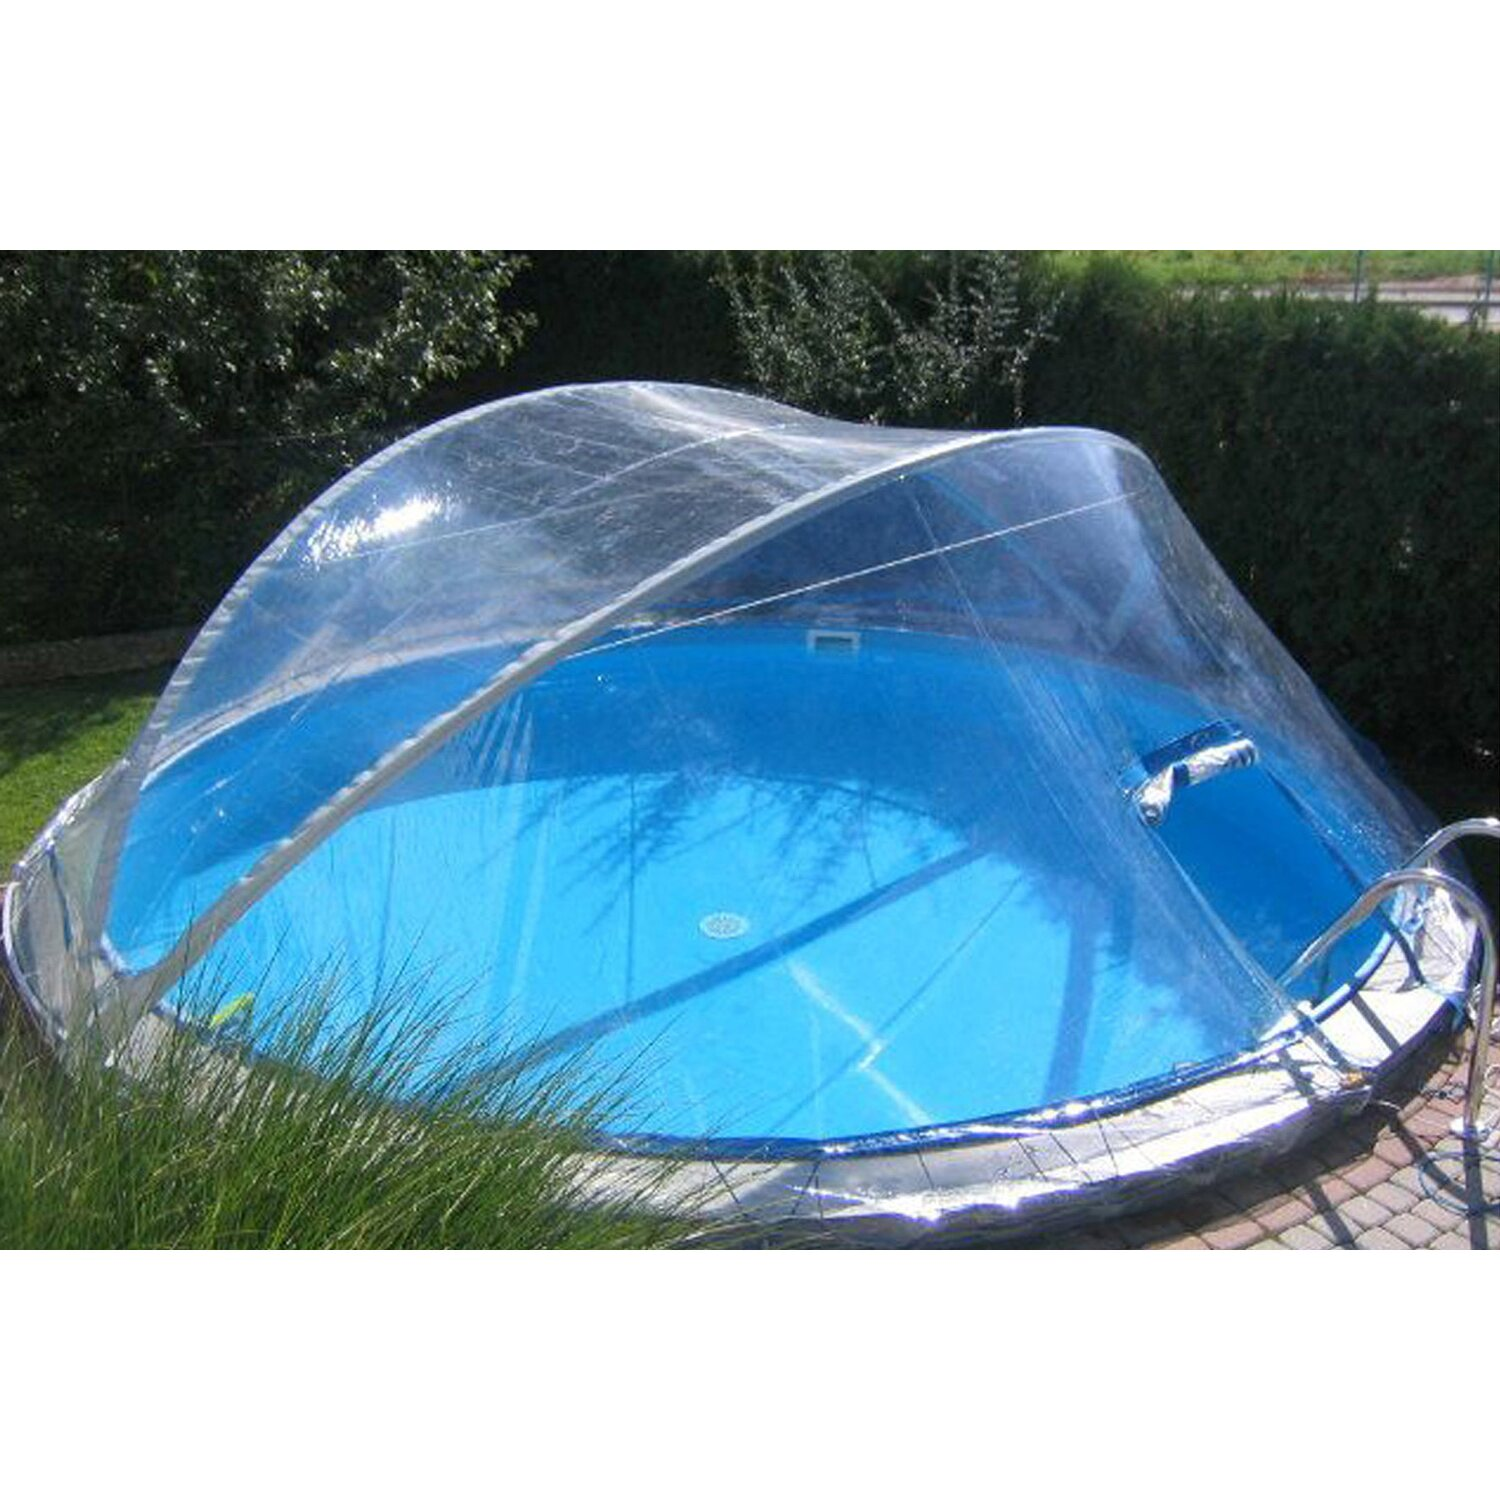 summer fun pool berdachung cabrio dome f r pools 400. Black Bedroom Furniture Sets. Home Design Ideas